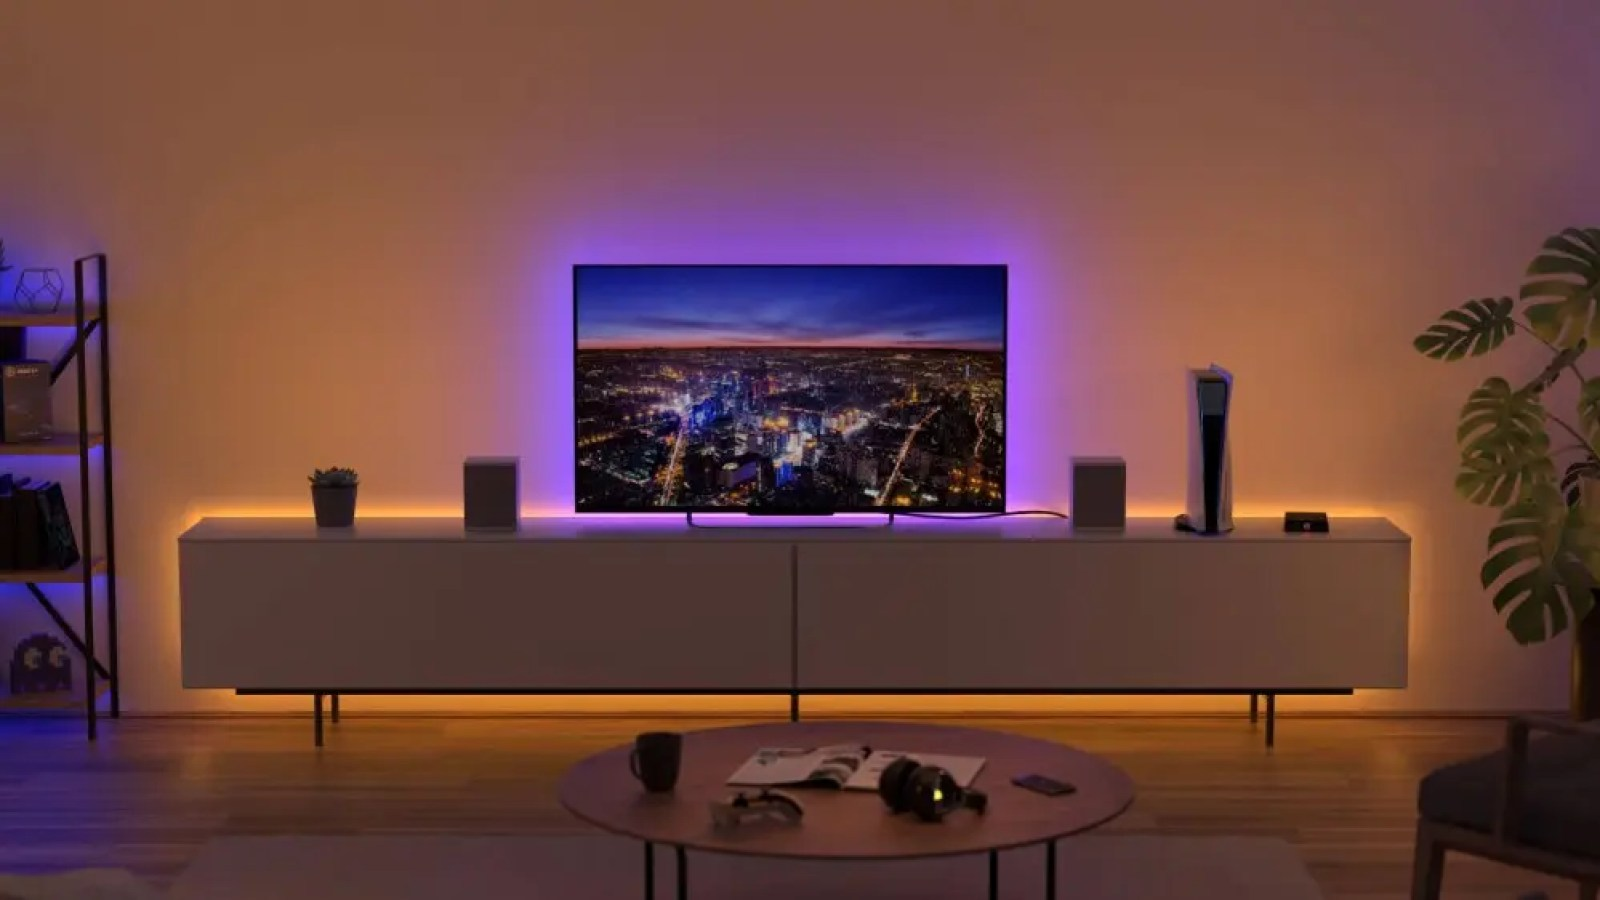 The Elgato Light Strip behind a TV and entertainment center.